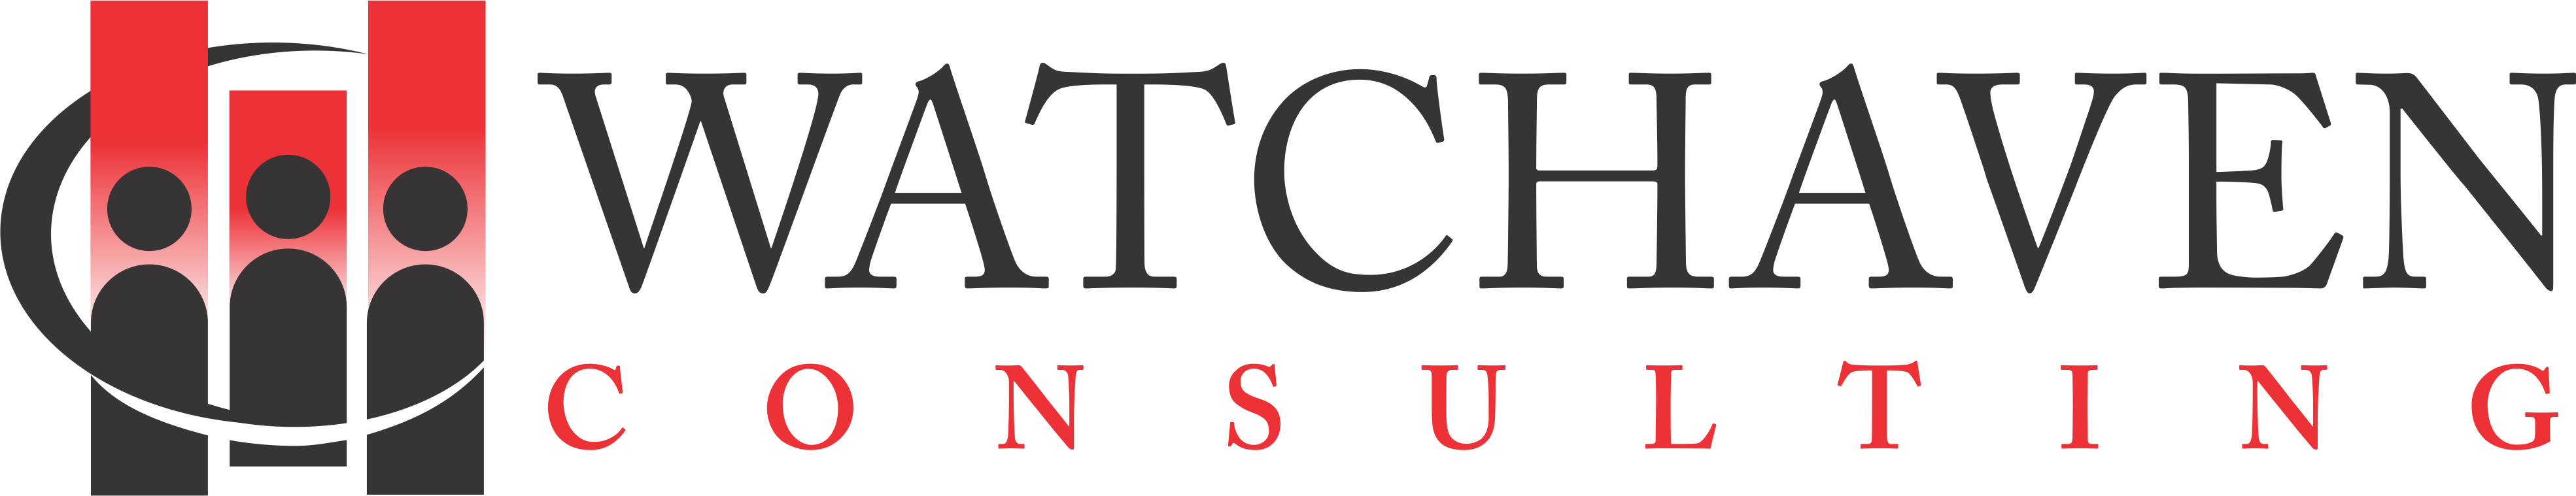 Watchaven Consulting